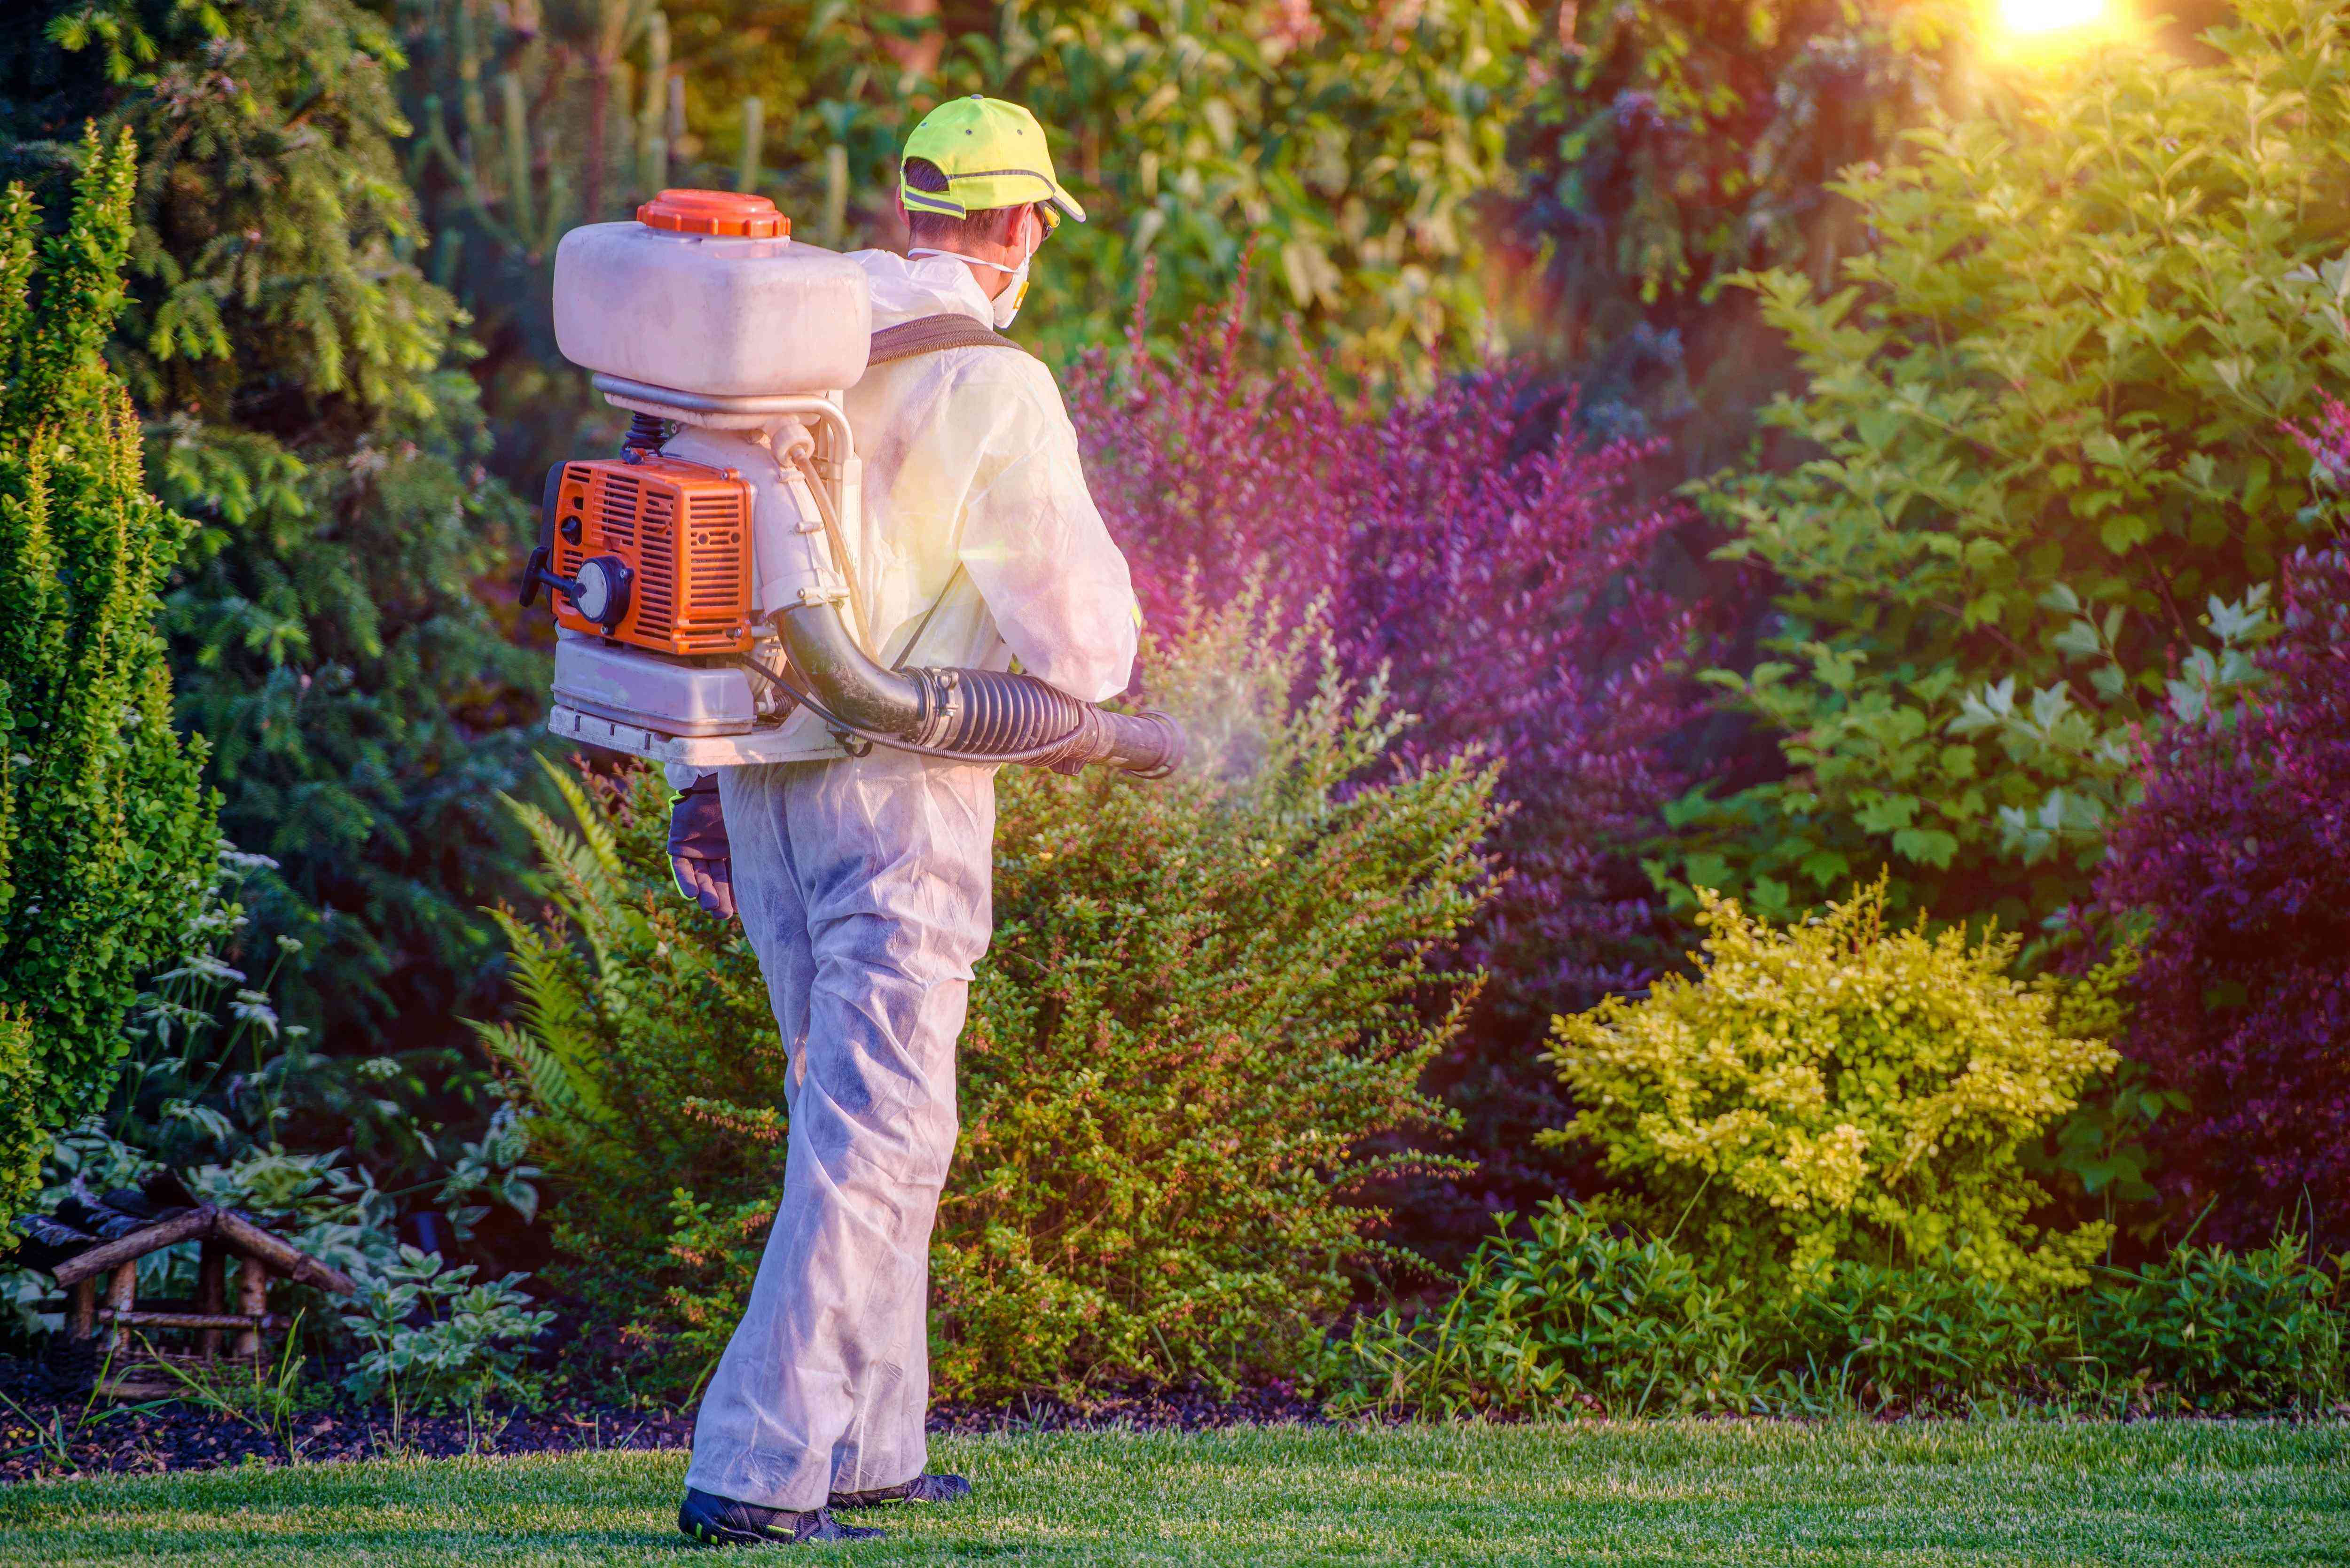 Safety Watch Pesticide Applications Come With Hazards